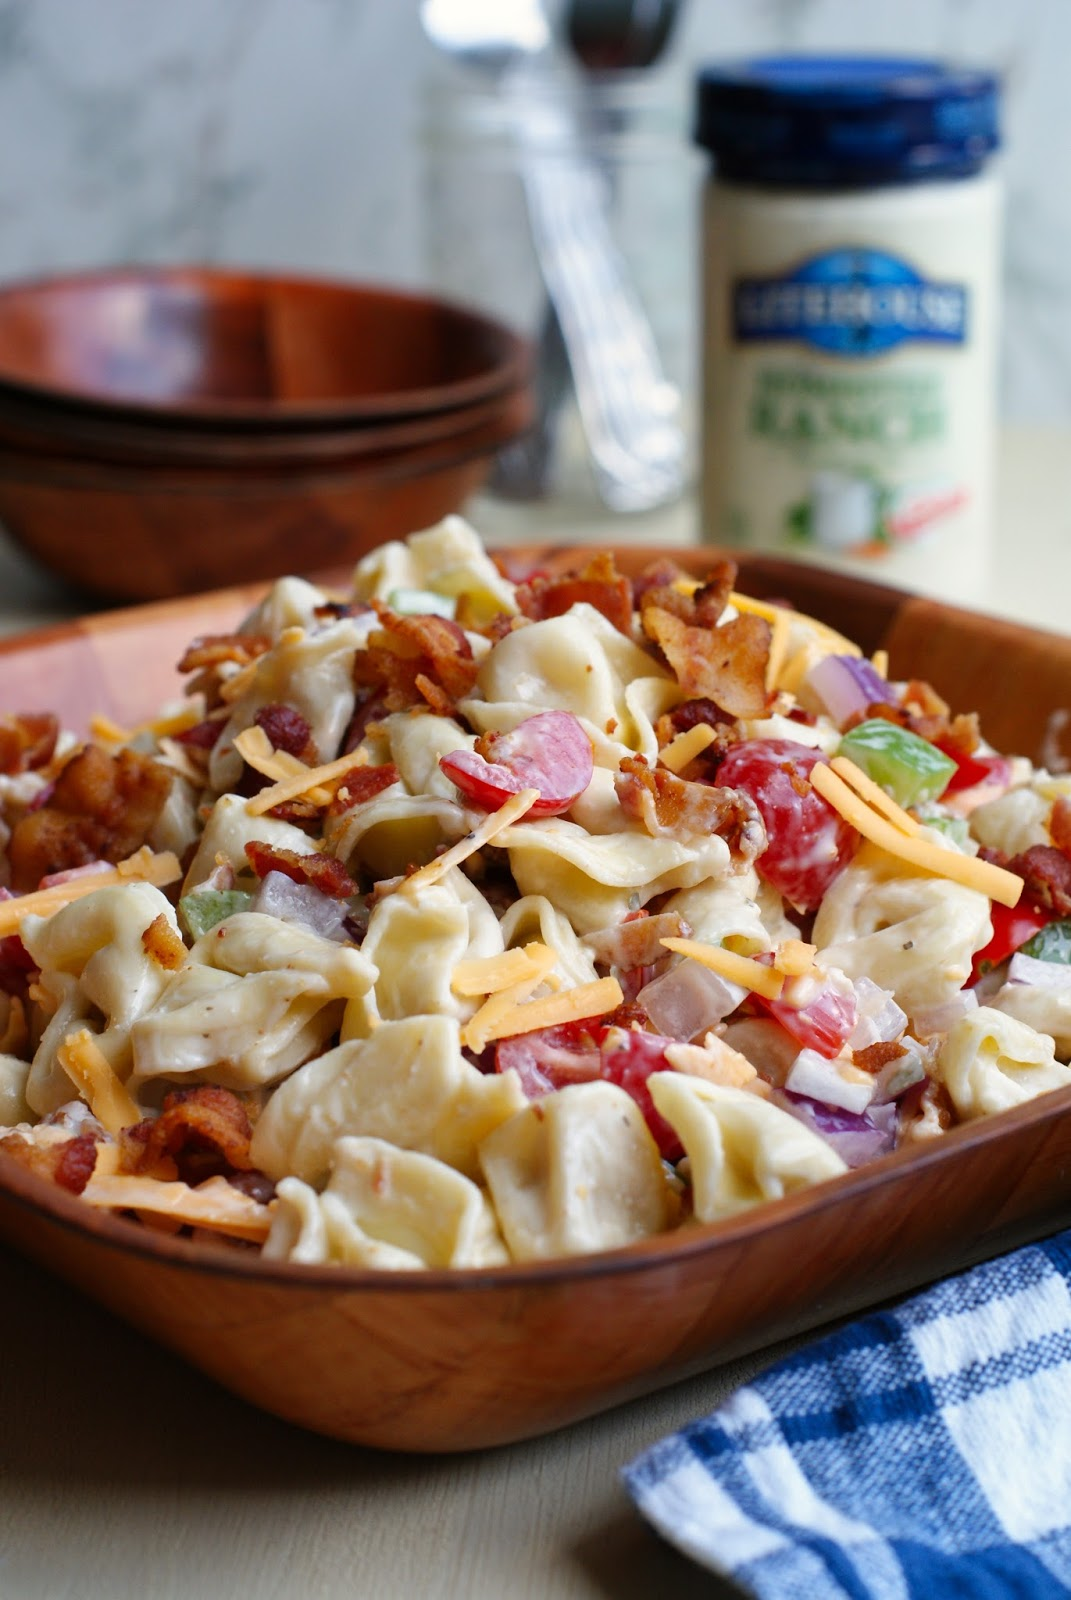 Bacon Ranch Tortellini Salad is a party perfect pasta salad that pairs cheese-filled tortellini with fresh veggies, cheddar cheese, cool ranch dressing, and lots of crisp crumbled bacon! SeeTheLight AD